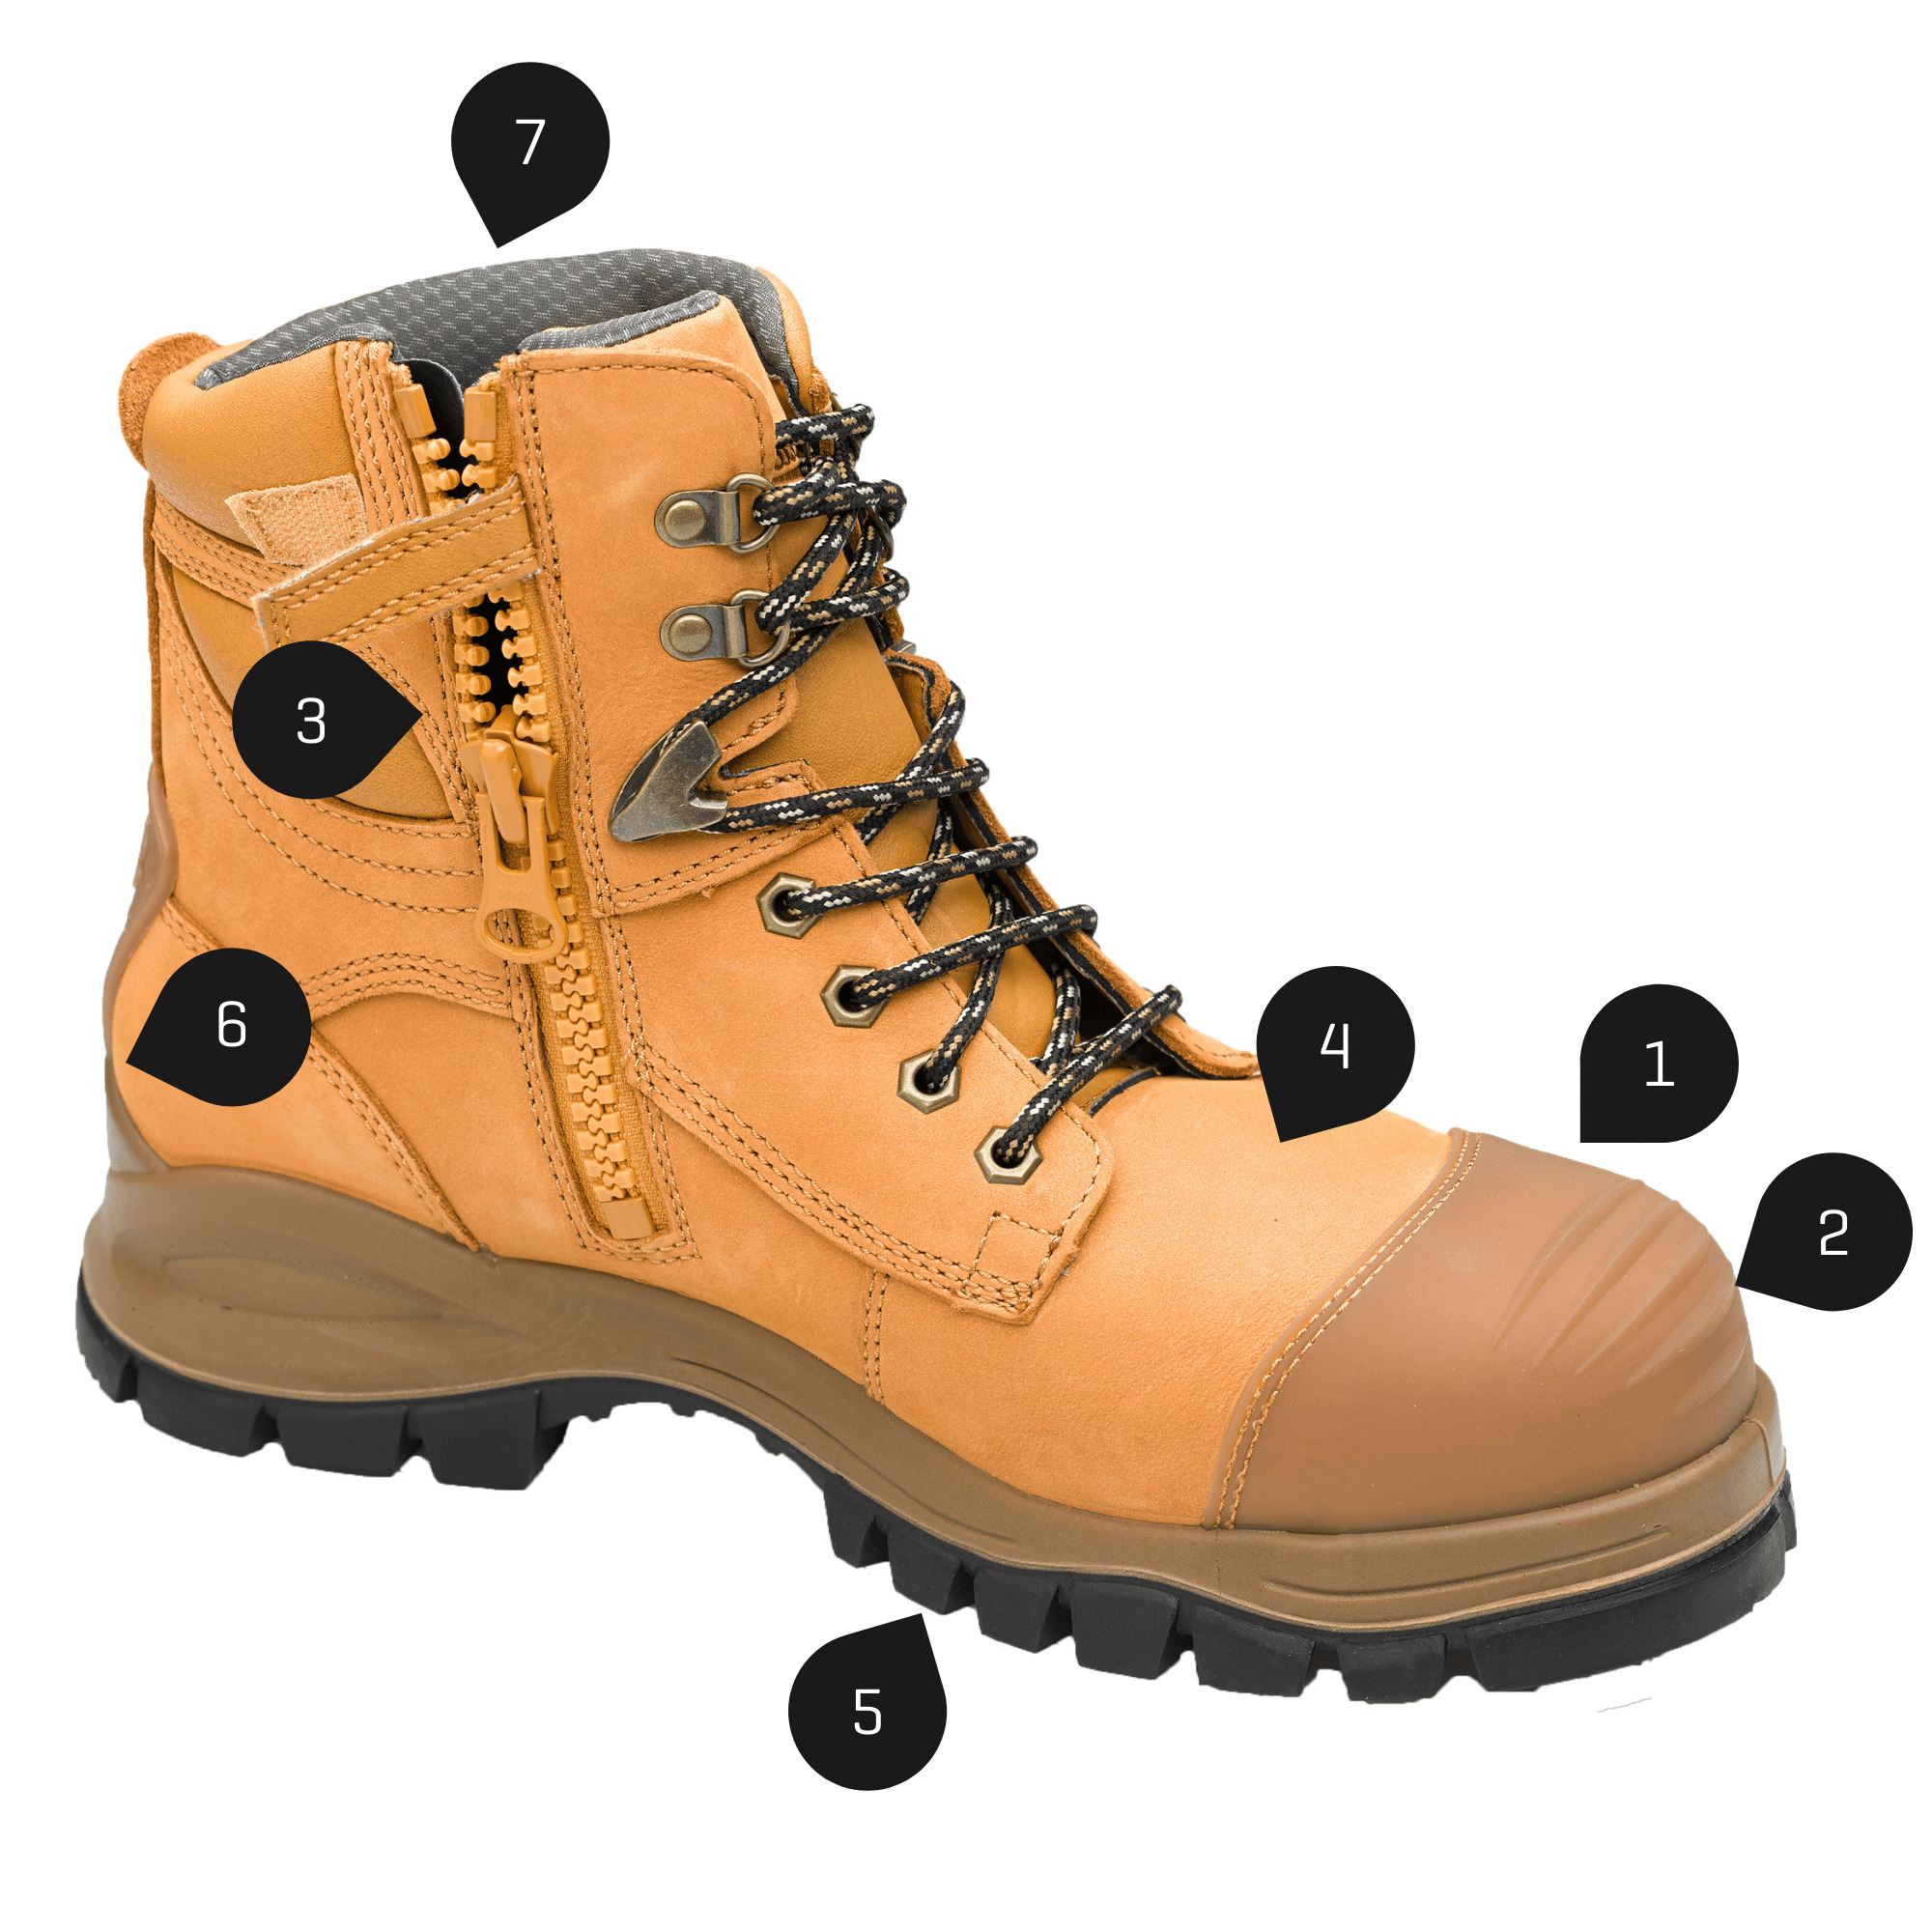 What to look for in a safety boot